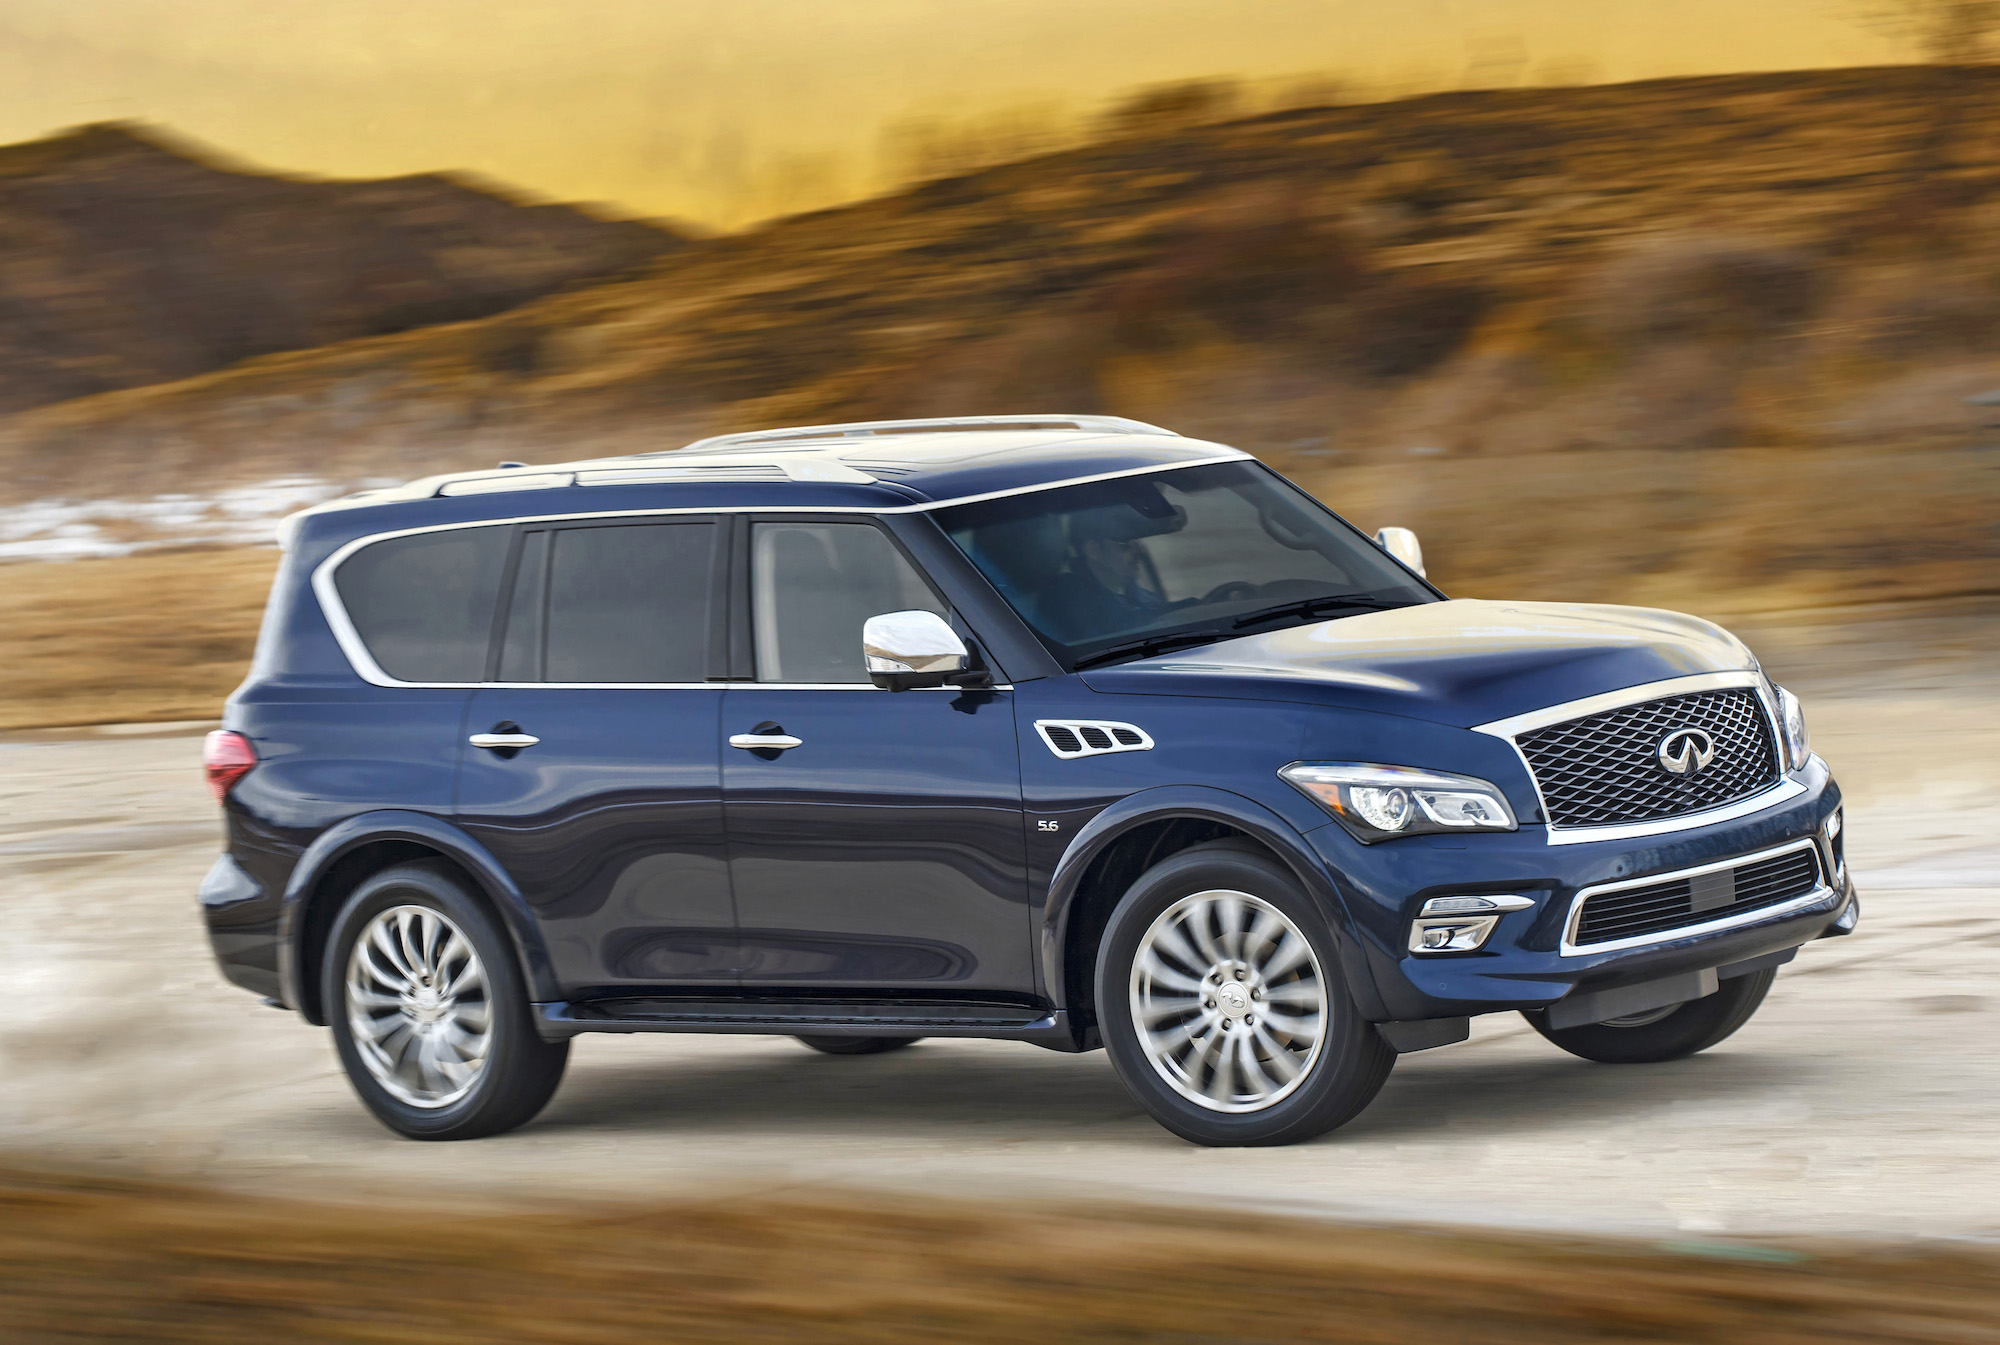 Used Fiat Columbus >> 2015 INFINITI QX80 Review, Ratings, Specs, Prices, and Photos - The Car Connection